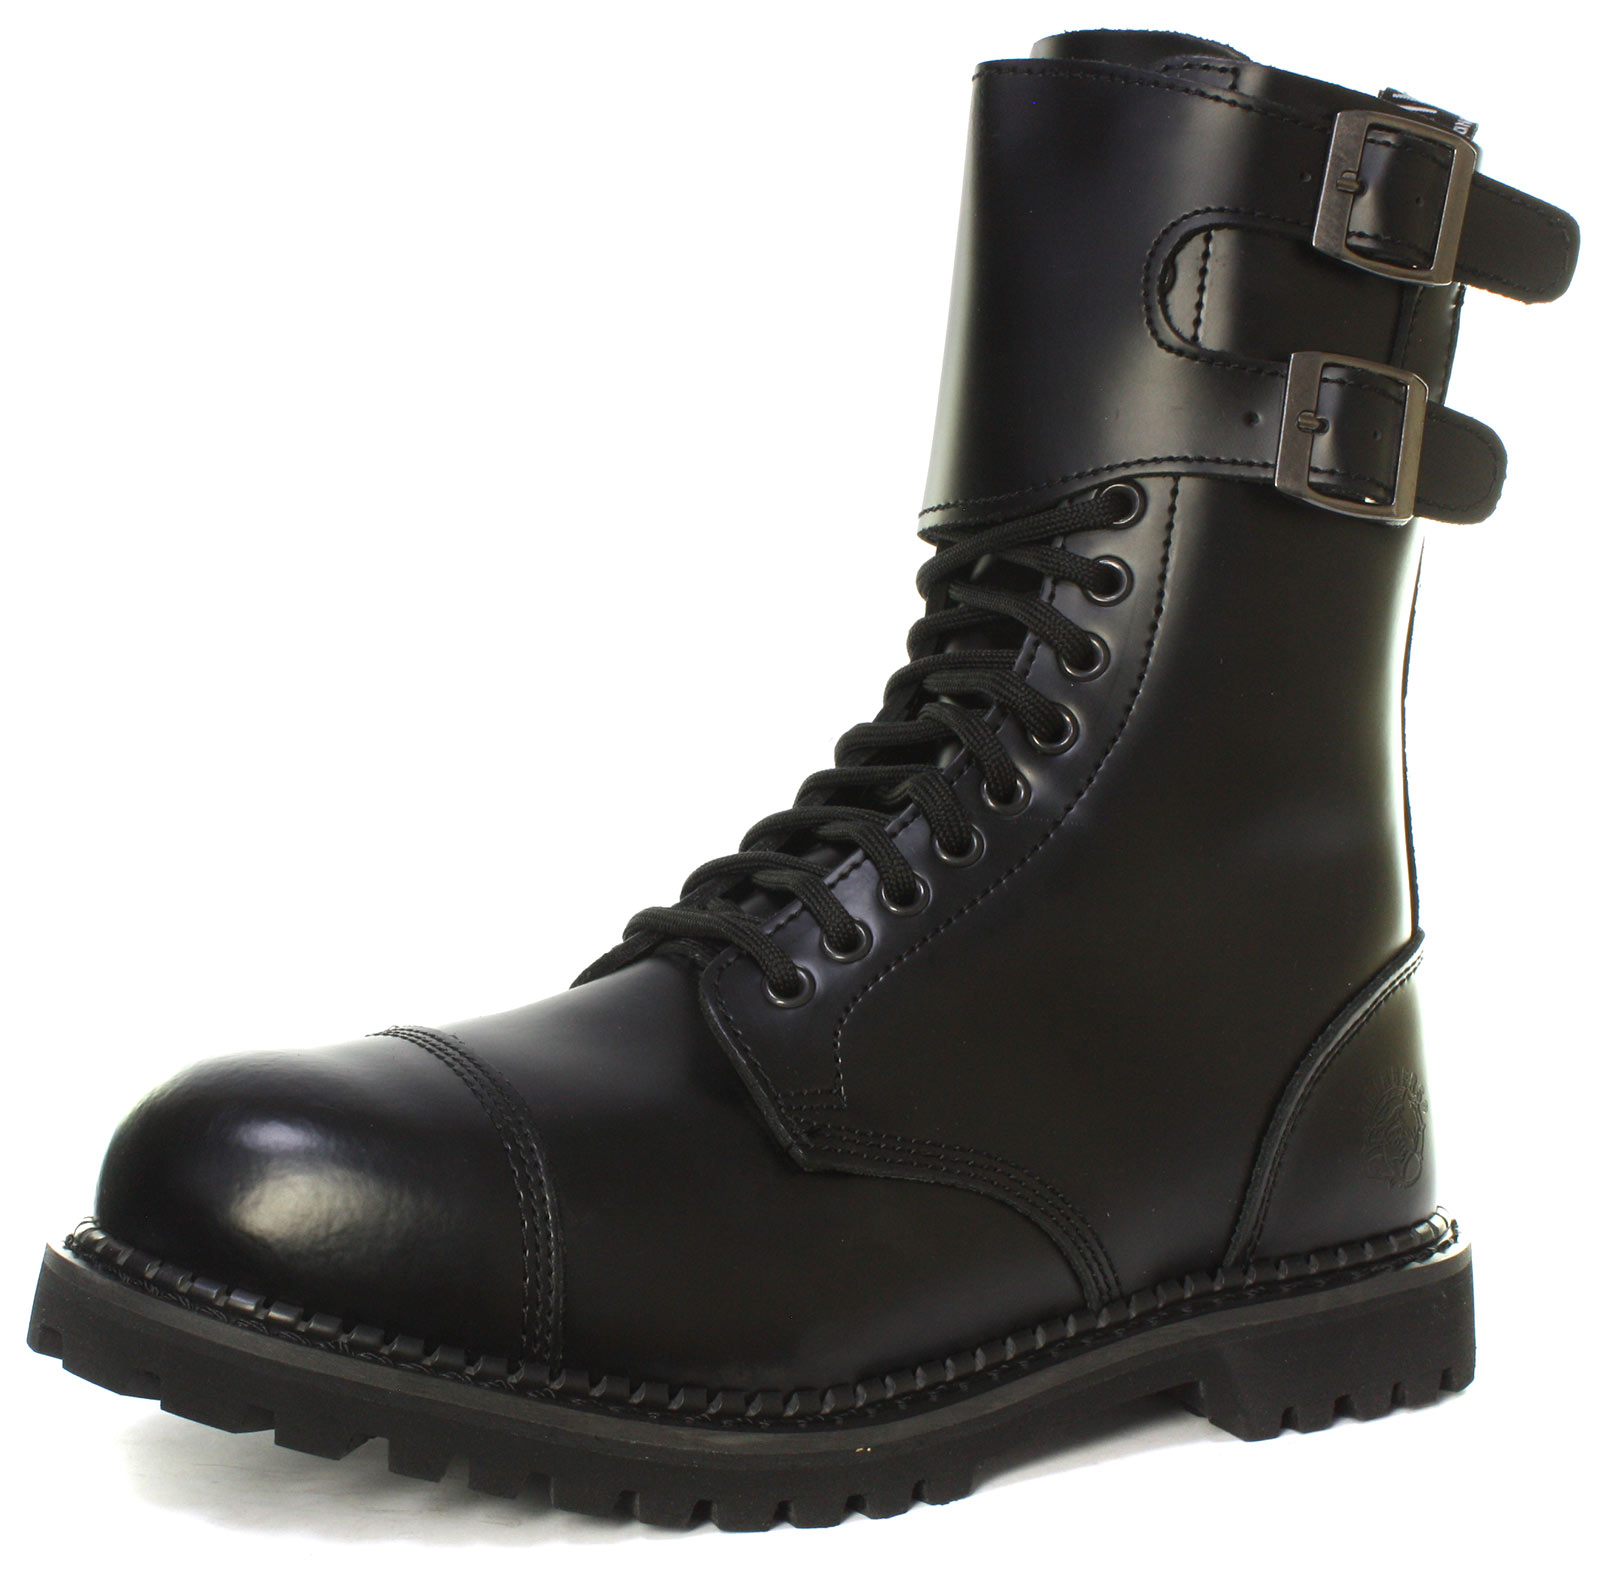 Grinders-Camelot-CS-14-Eyelet-Twin-Buckle-Unisex-Steel-Toe-Boots-ALL-SIZES